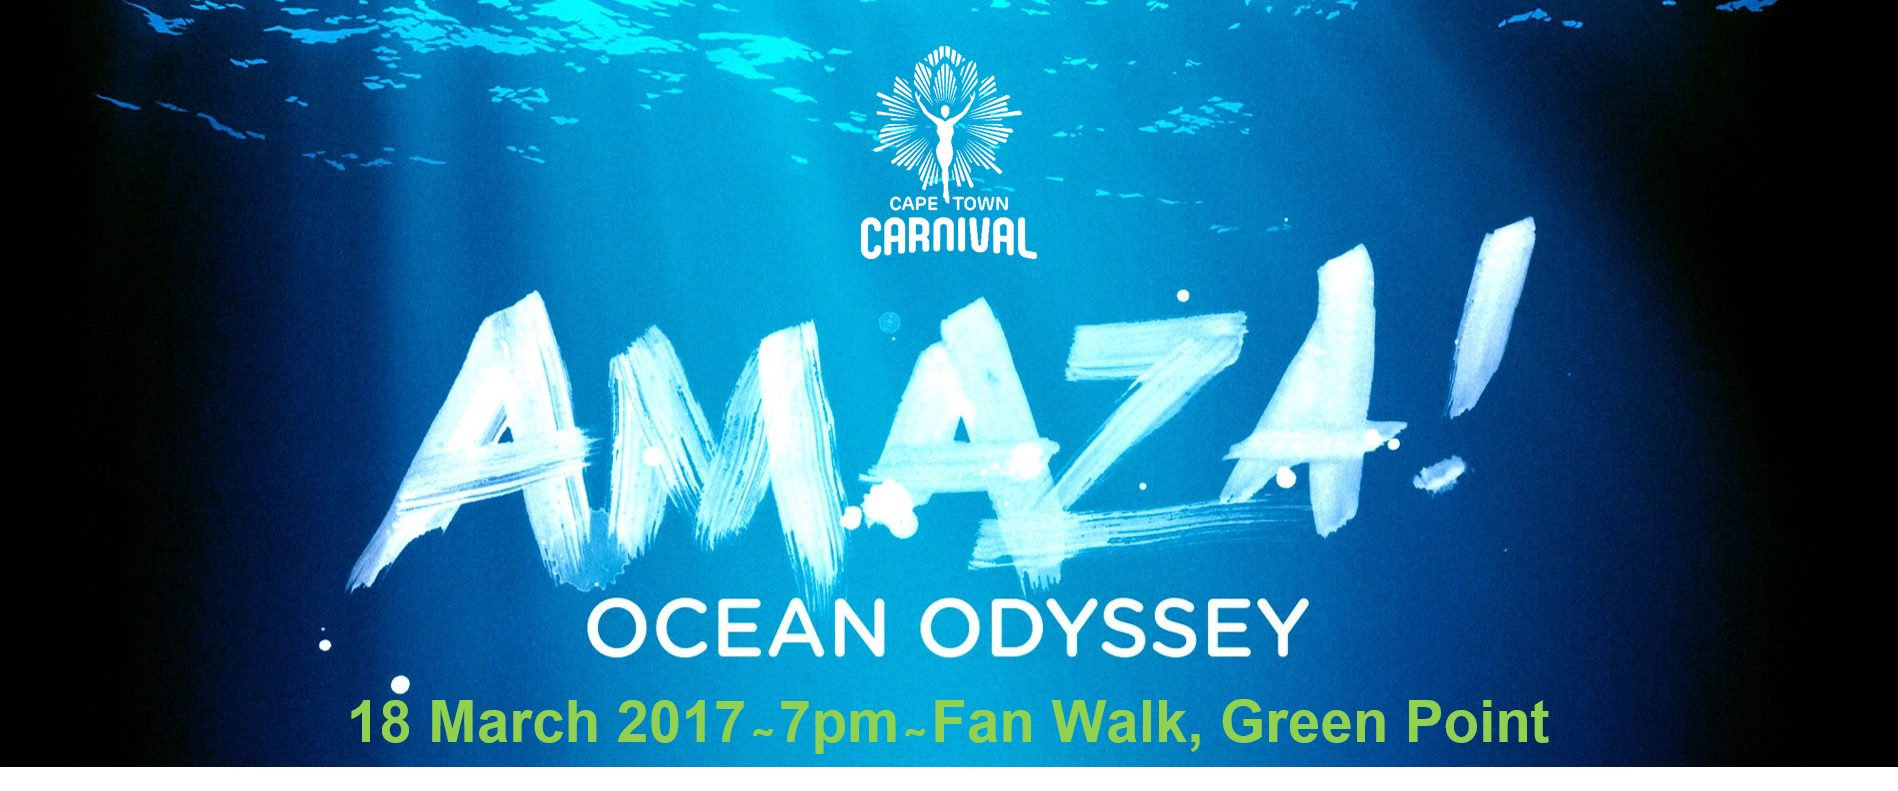 40 DAYS UNTIL CAPE TOWN CARNIVAL'S OCEAN ODYSSEY COMES TO LIFE